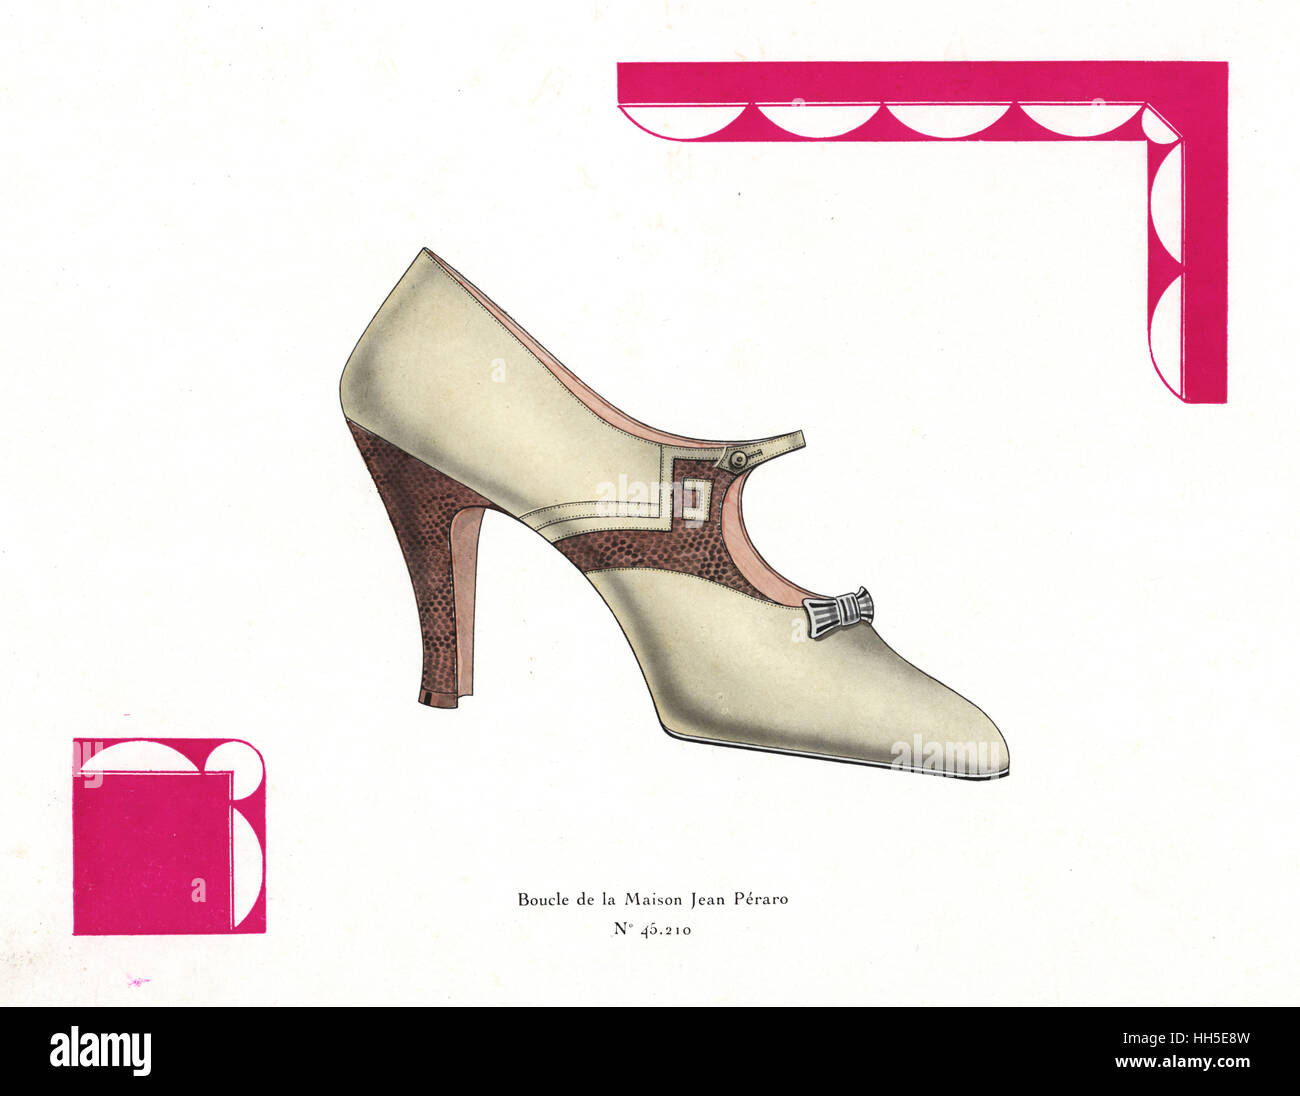 Woman's buckle shoe from Maison Jean Peraro in ivory leather with snakeskin detail in art deco border. Chromolithograph - Stock Image